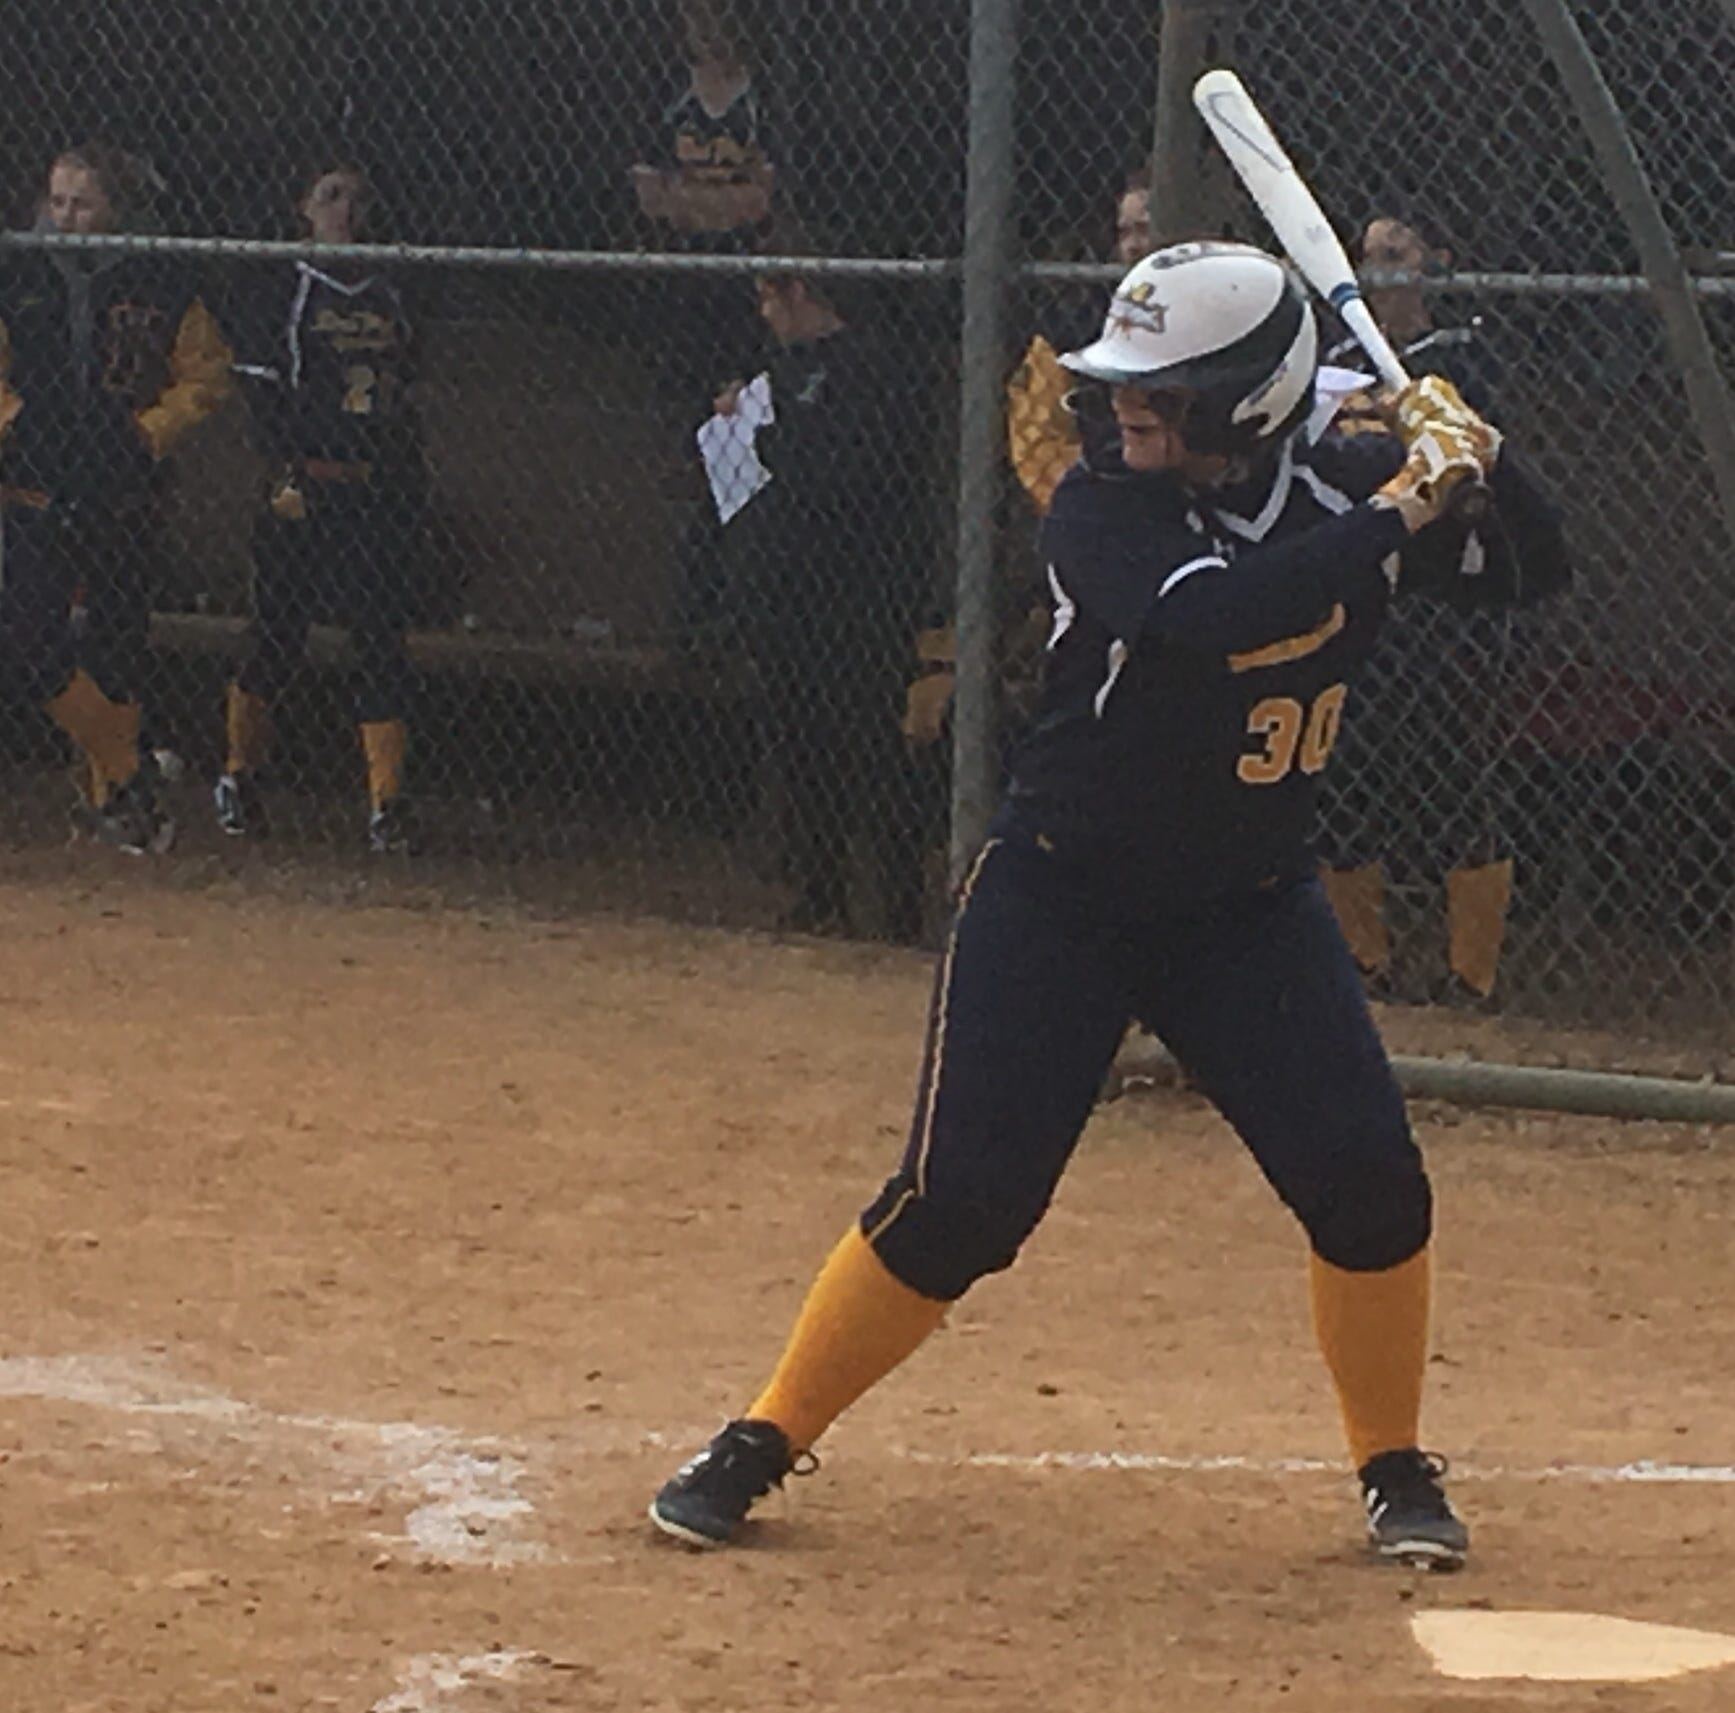 NJ Softball: Courier News Roundup for Tuesday, April 23